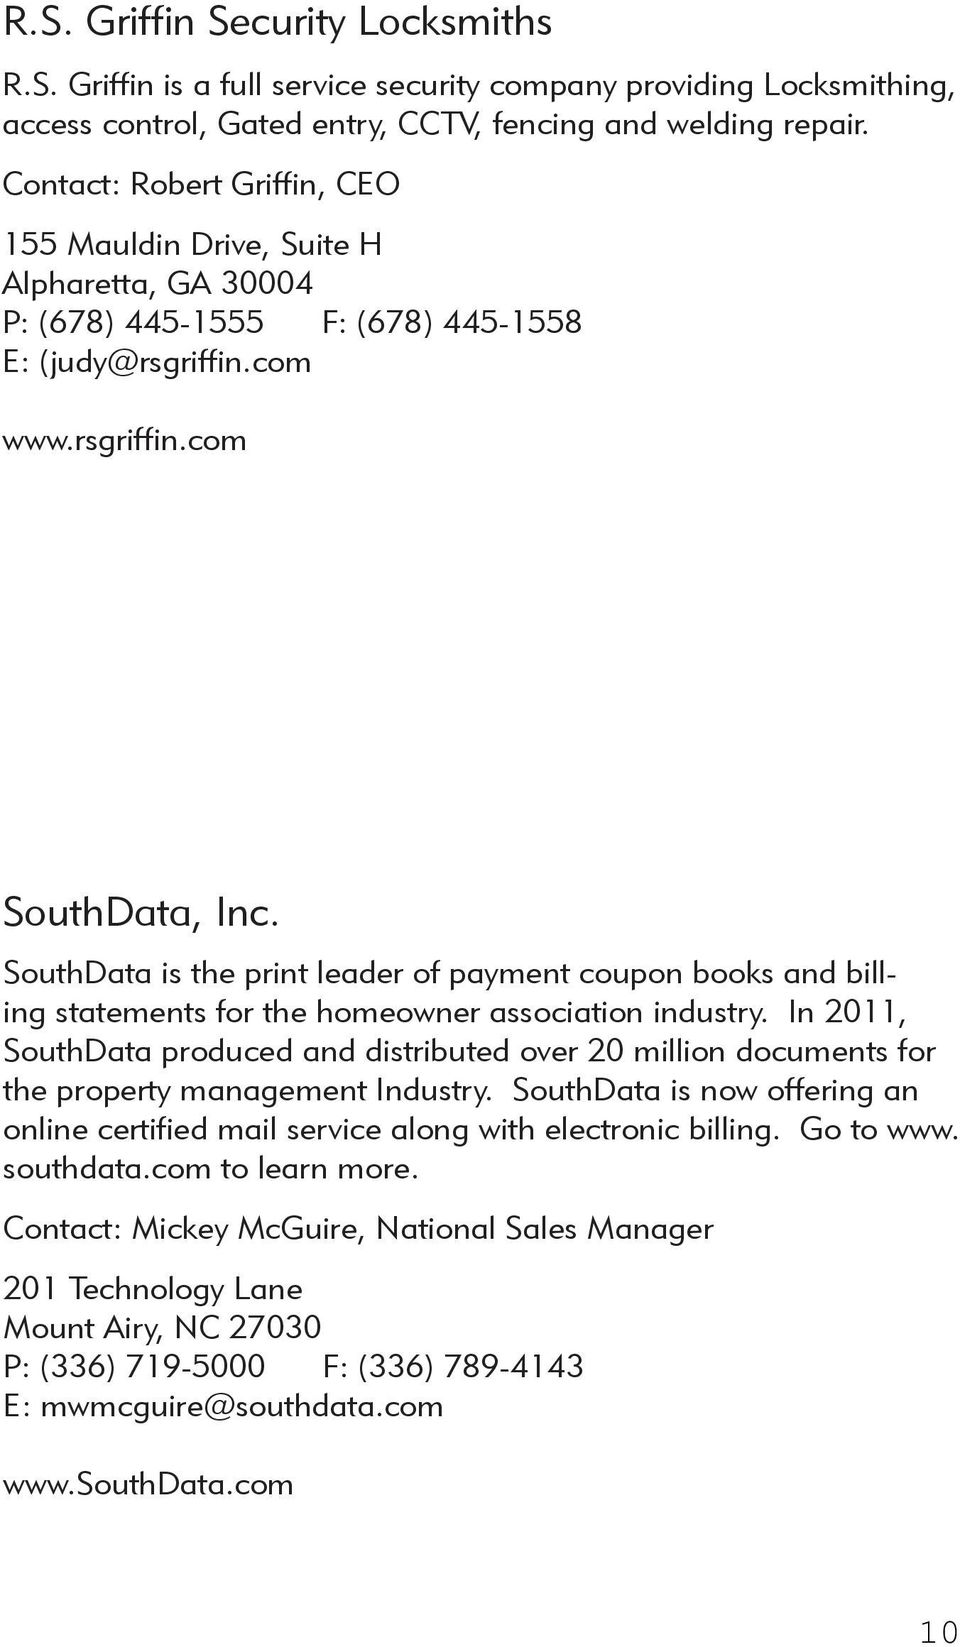 SouthData is the print leader of payment coupon books and billing statements for the homeowner association industry.